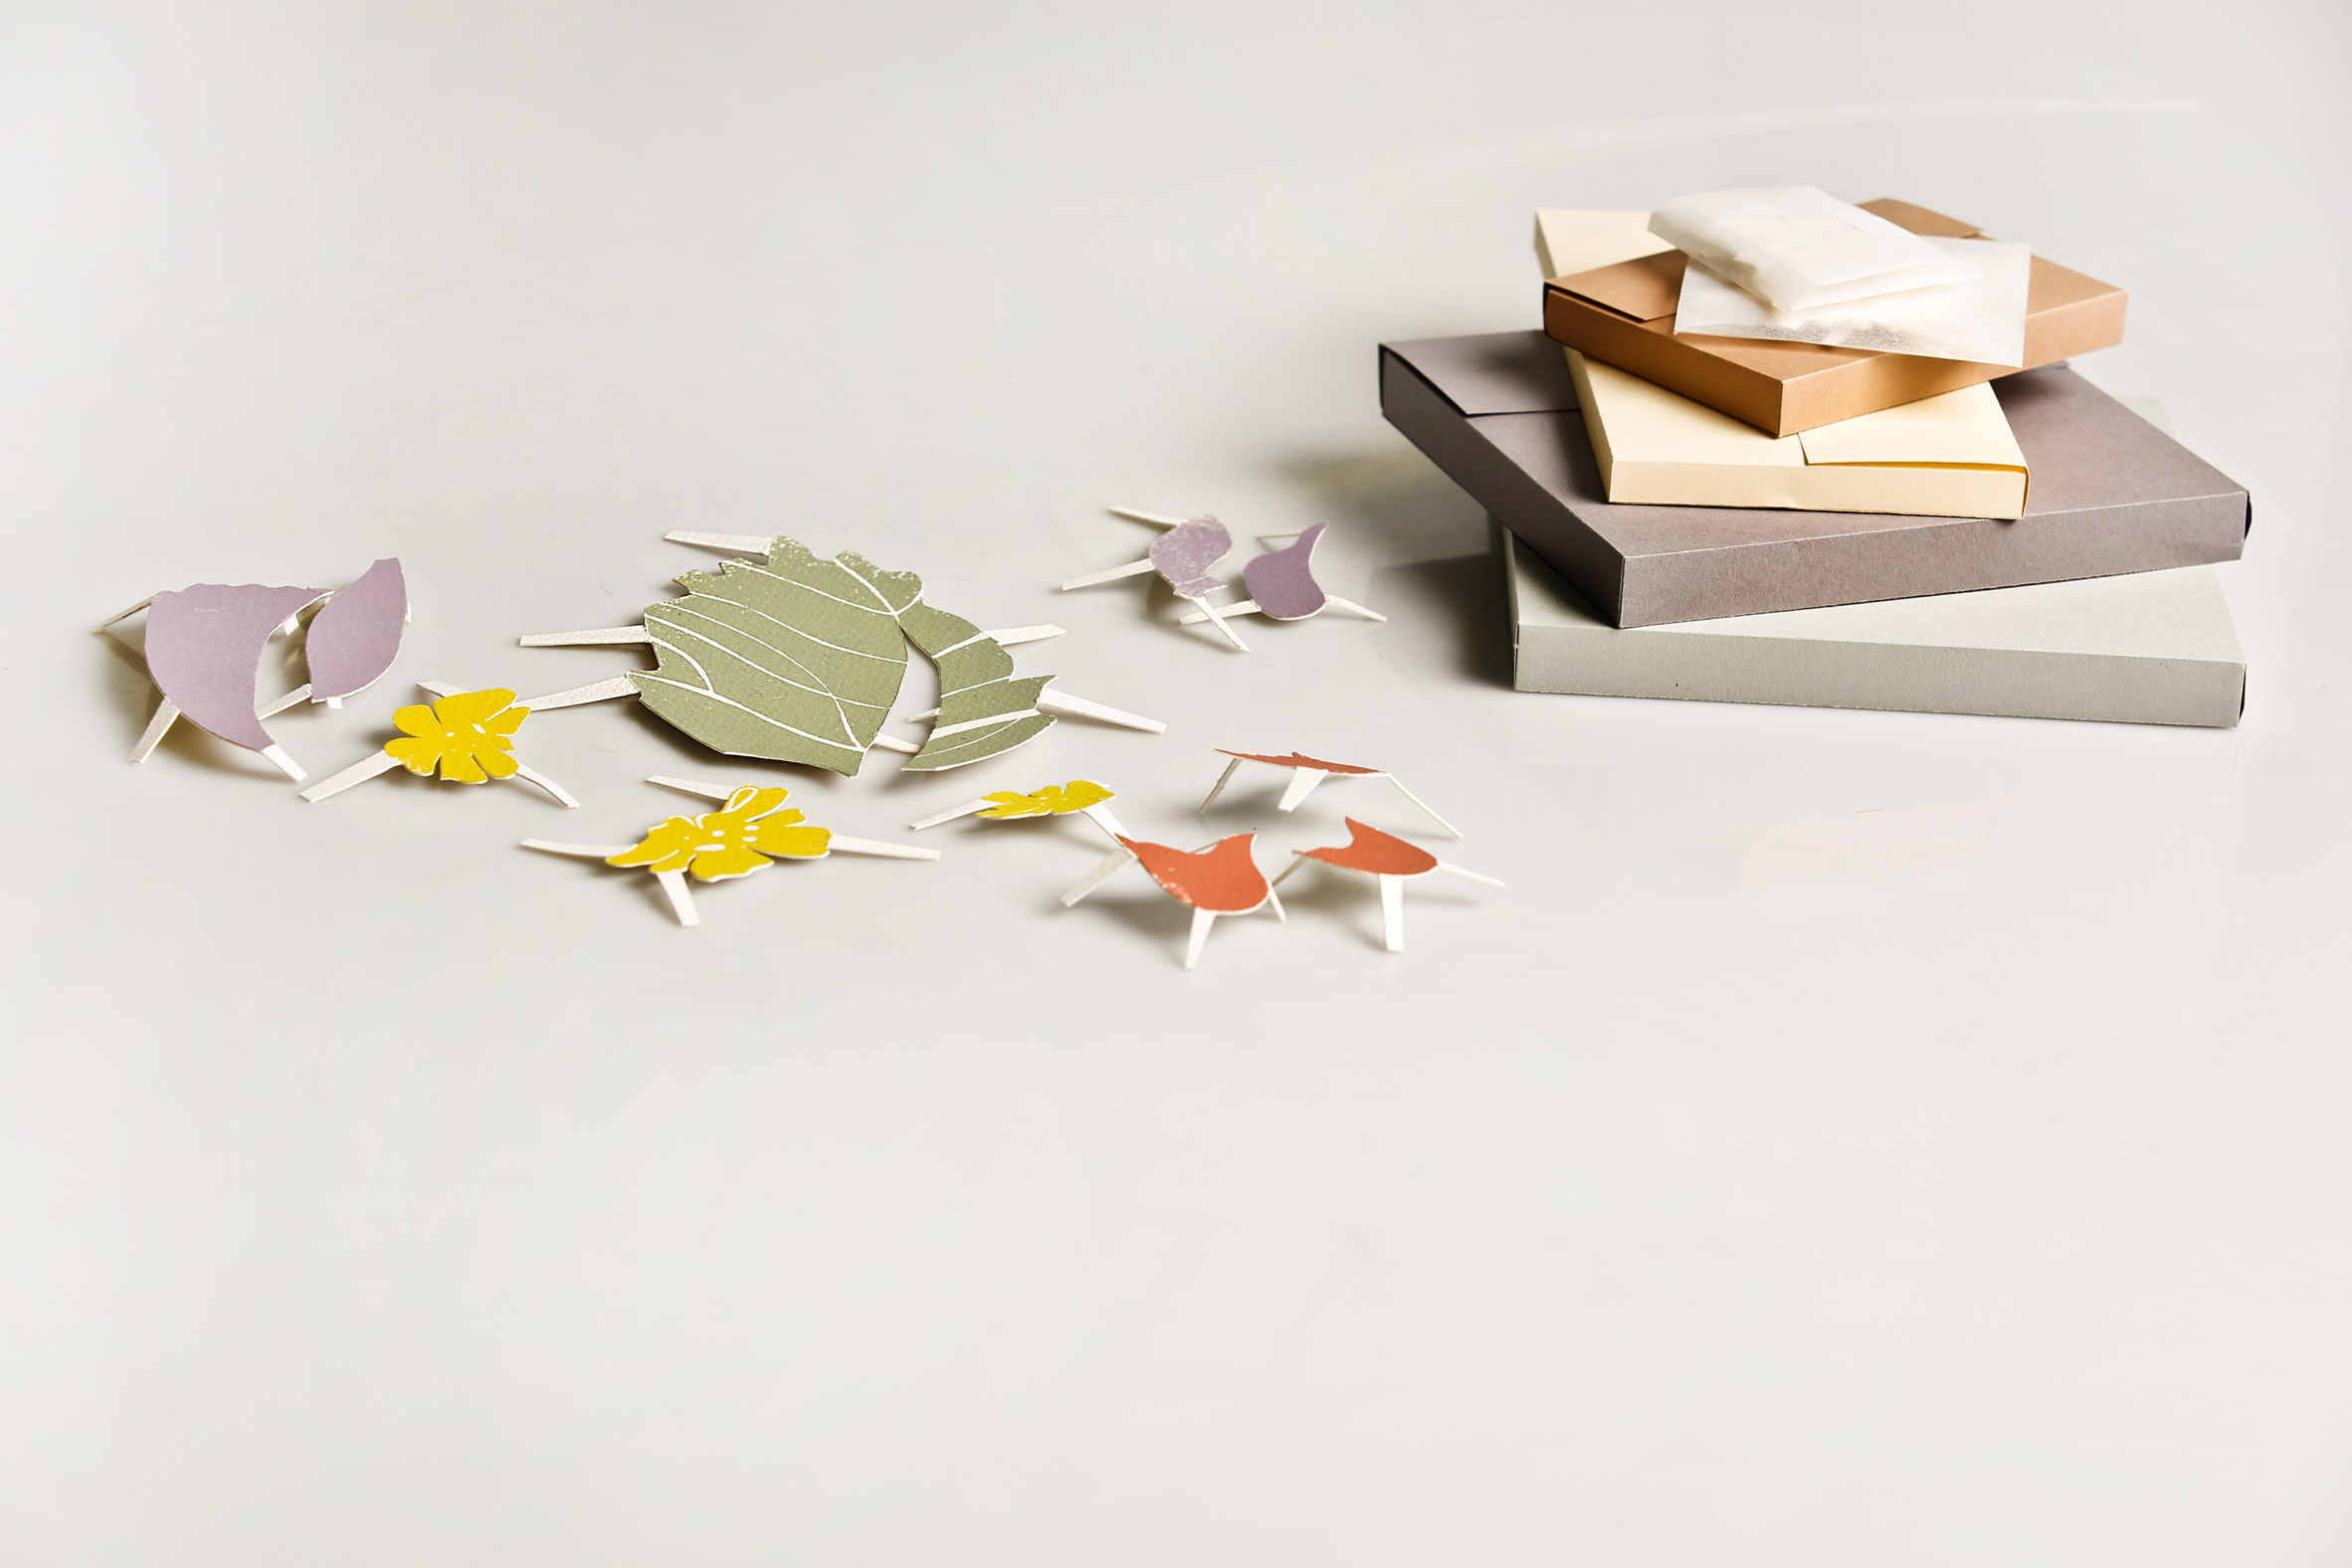 Home Pharmacy is composed of several cutouts and a wall hanging